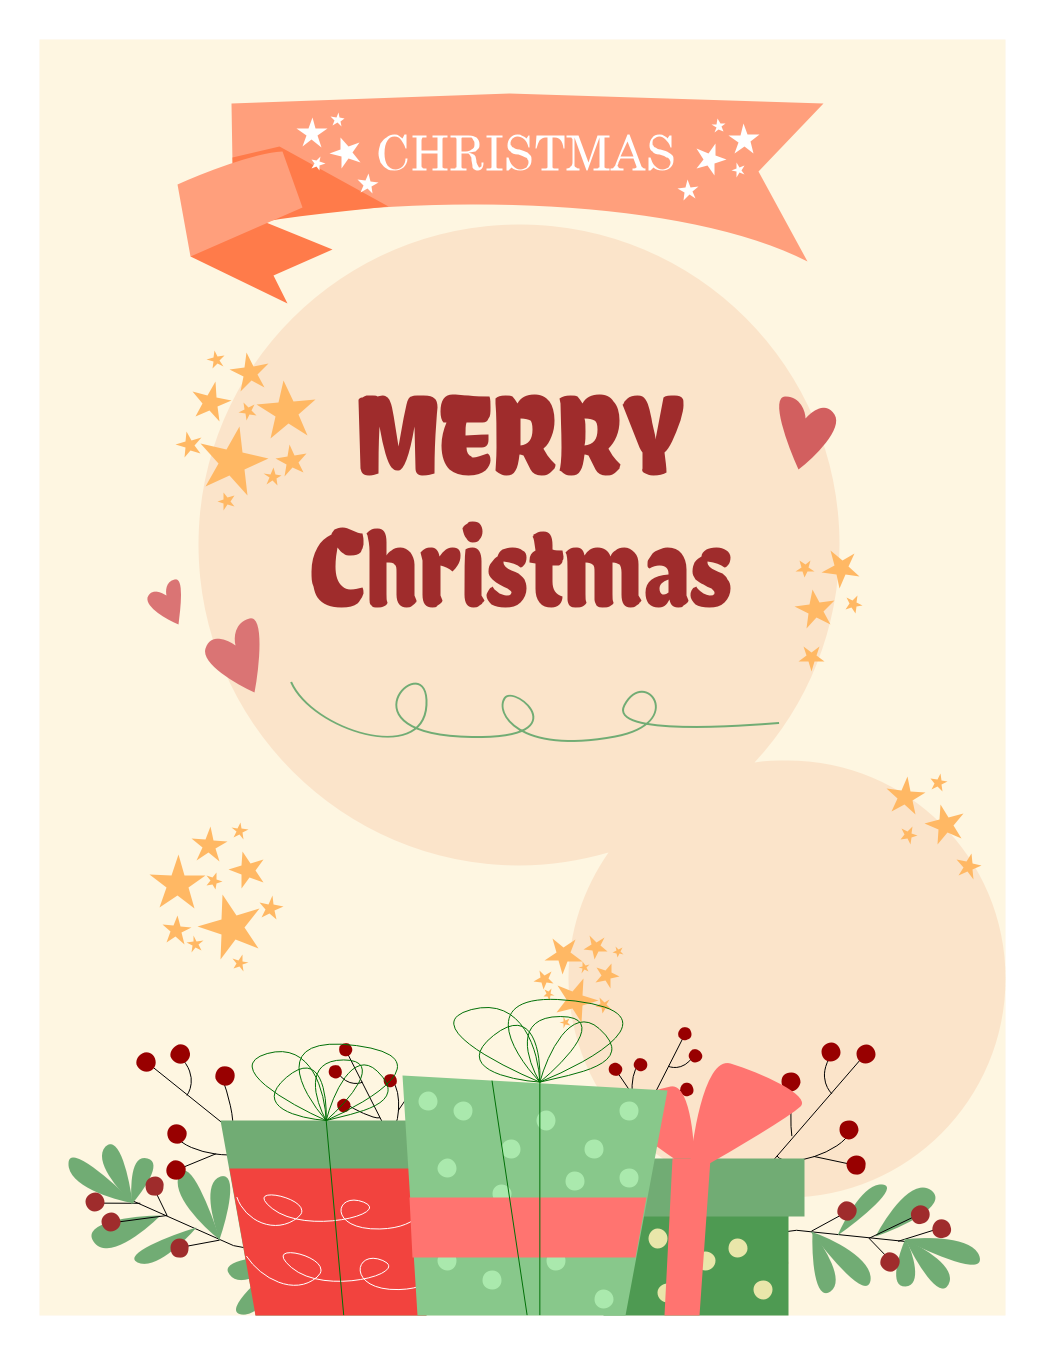 Diy Christmas Card Ideas Edrawmax In 2020 Christmas Greeting Cards Christmas Cards Christmas Card Template